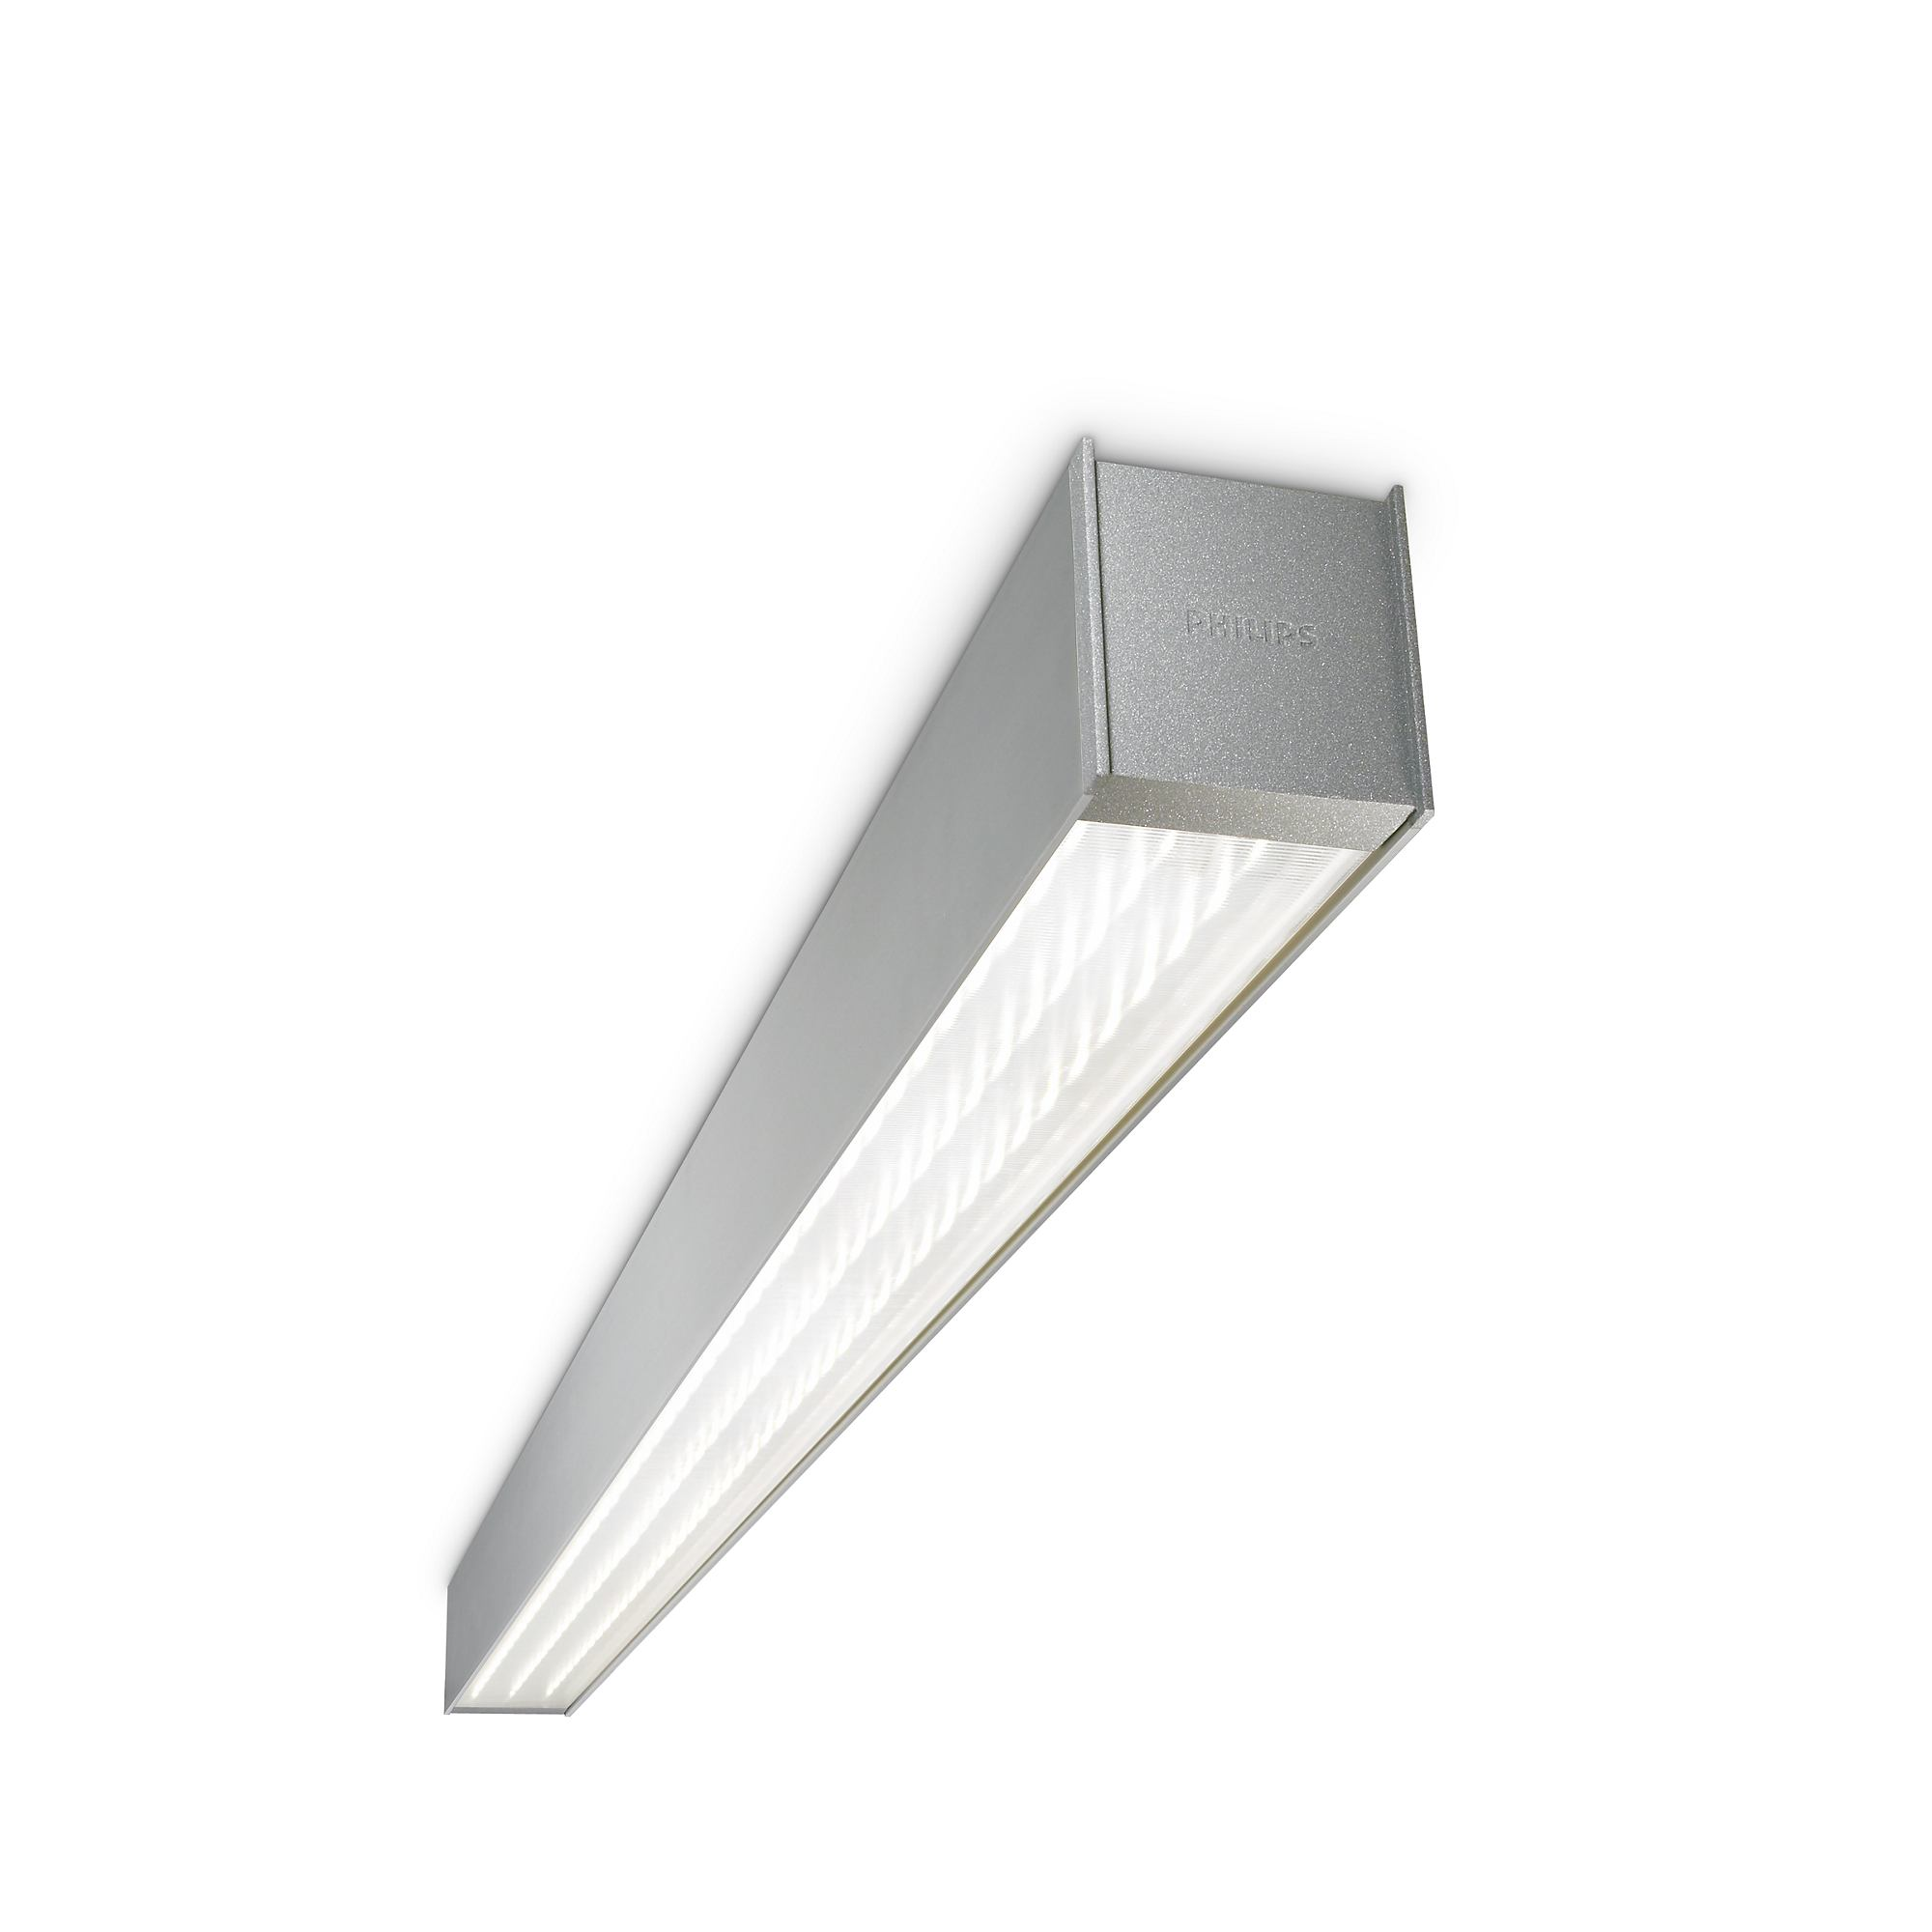 Celino BCS680 led48/840 psd w17l122 mlo pc